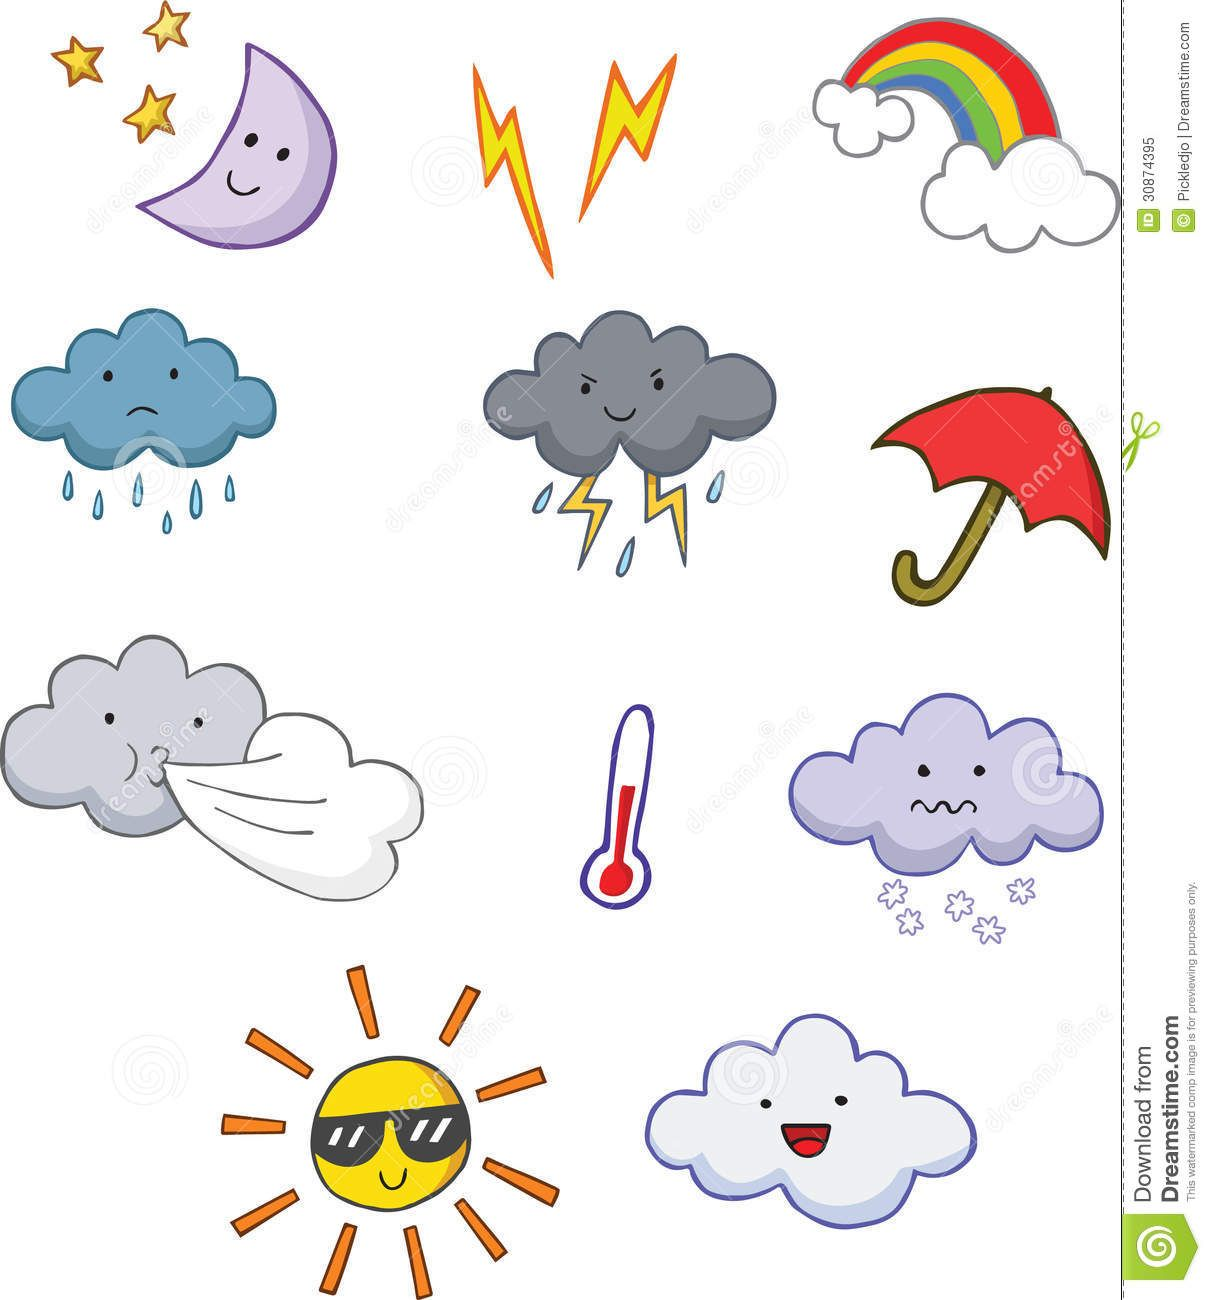 Fun Cute Cartoon Weather Symbols Download From Over 40 Million